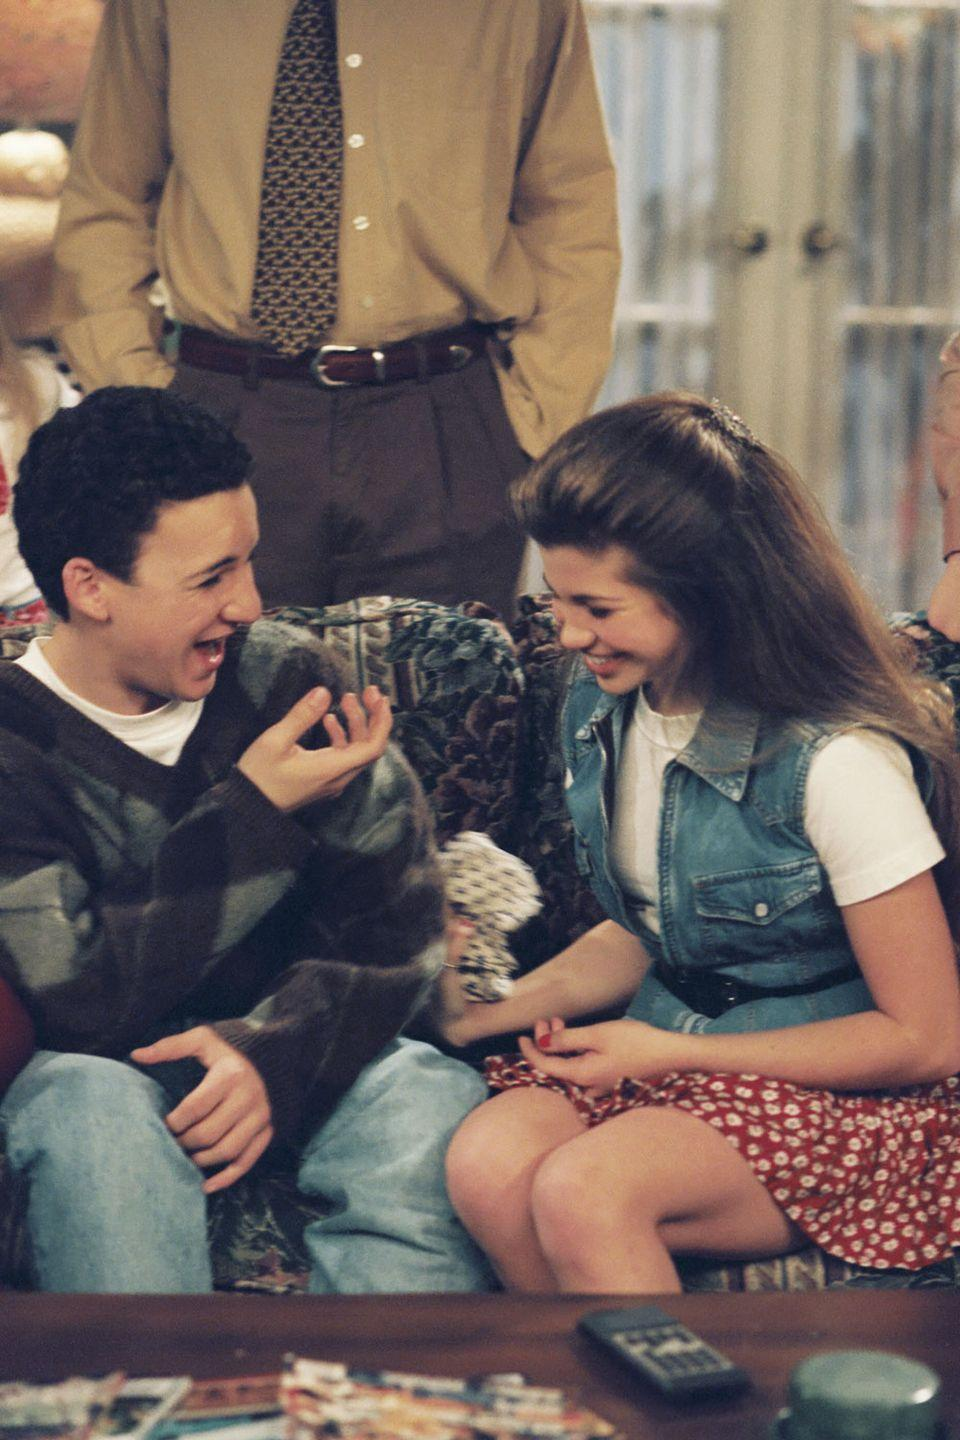 <p>High school sweethearts are the sweetest sweethearts.</p>